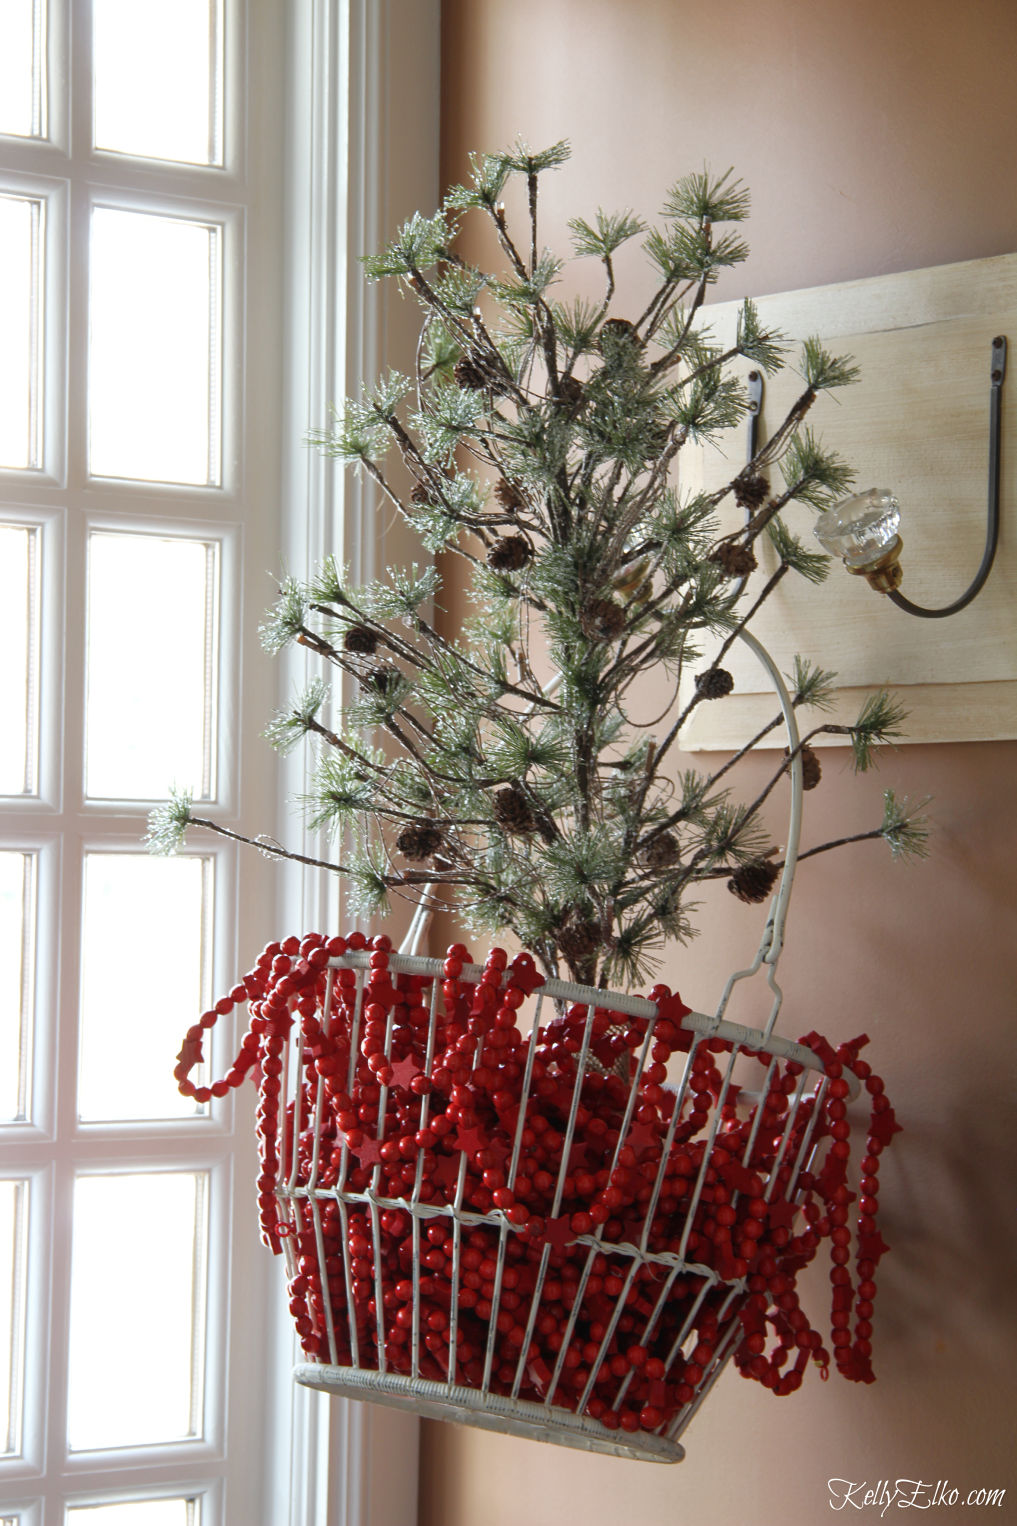 Love this Christmas tree in a wire basket filled with red garland kellyelko.com #christmastree #christmasdecor #christmasgarland #christmasdecorations #farmhousechristmas